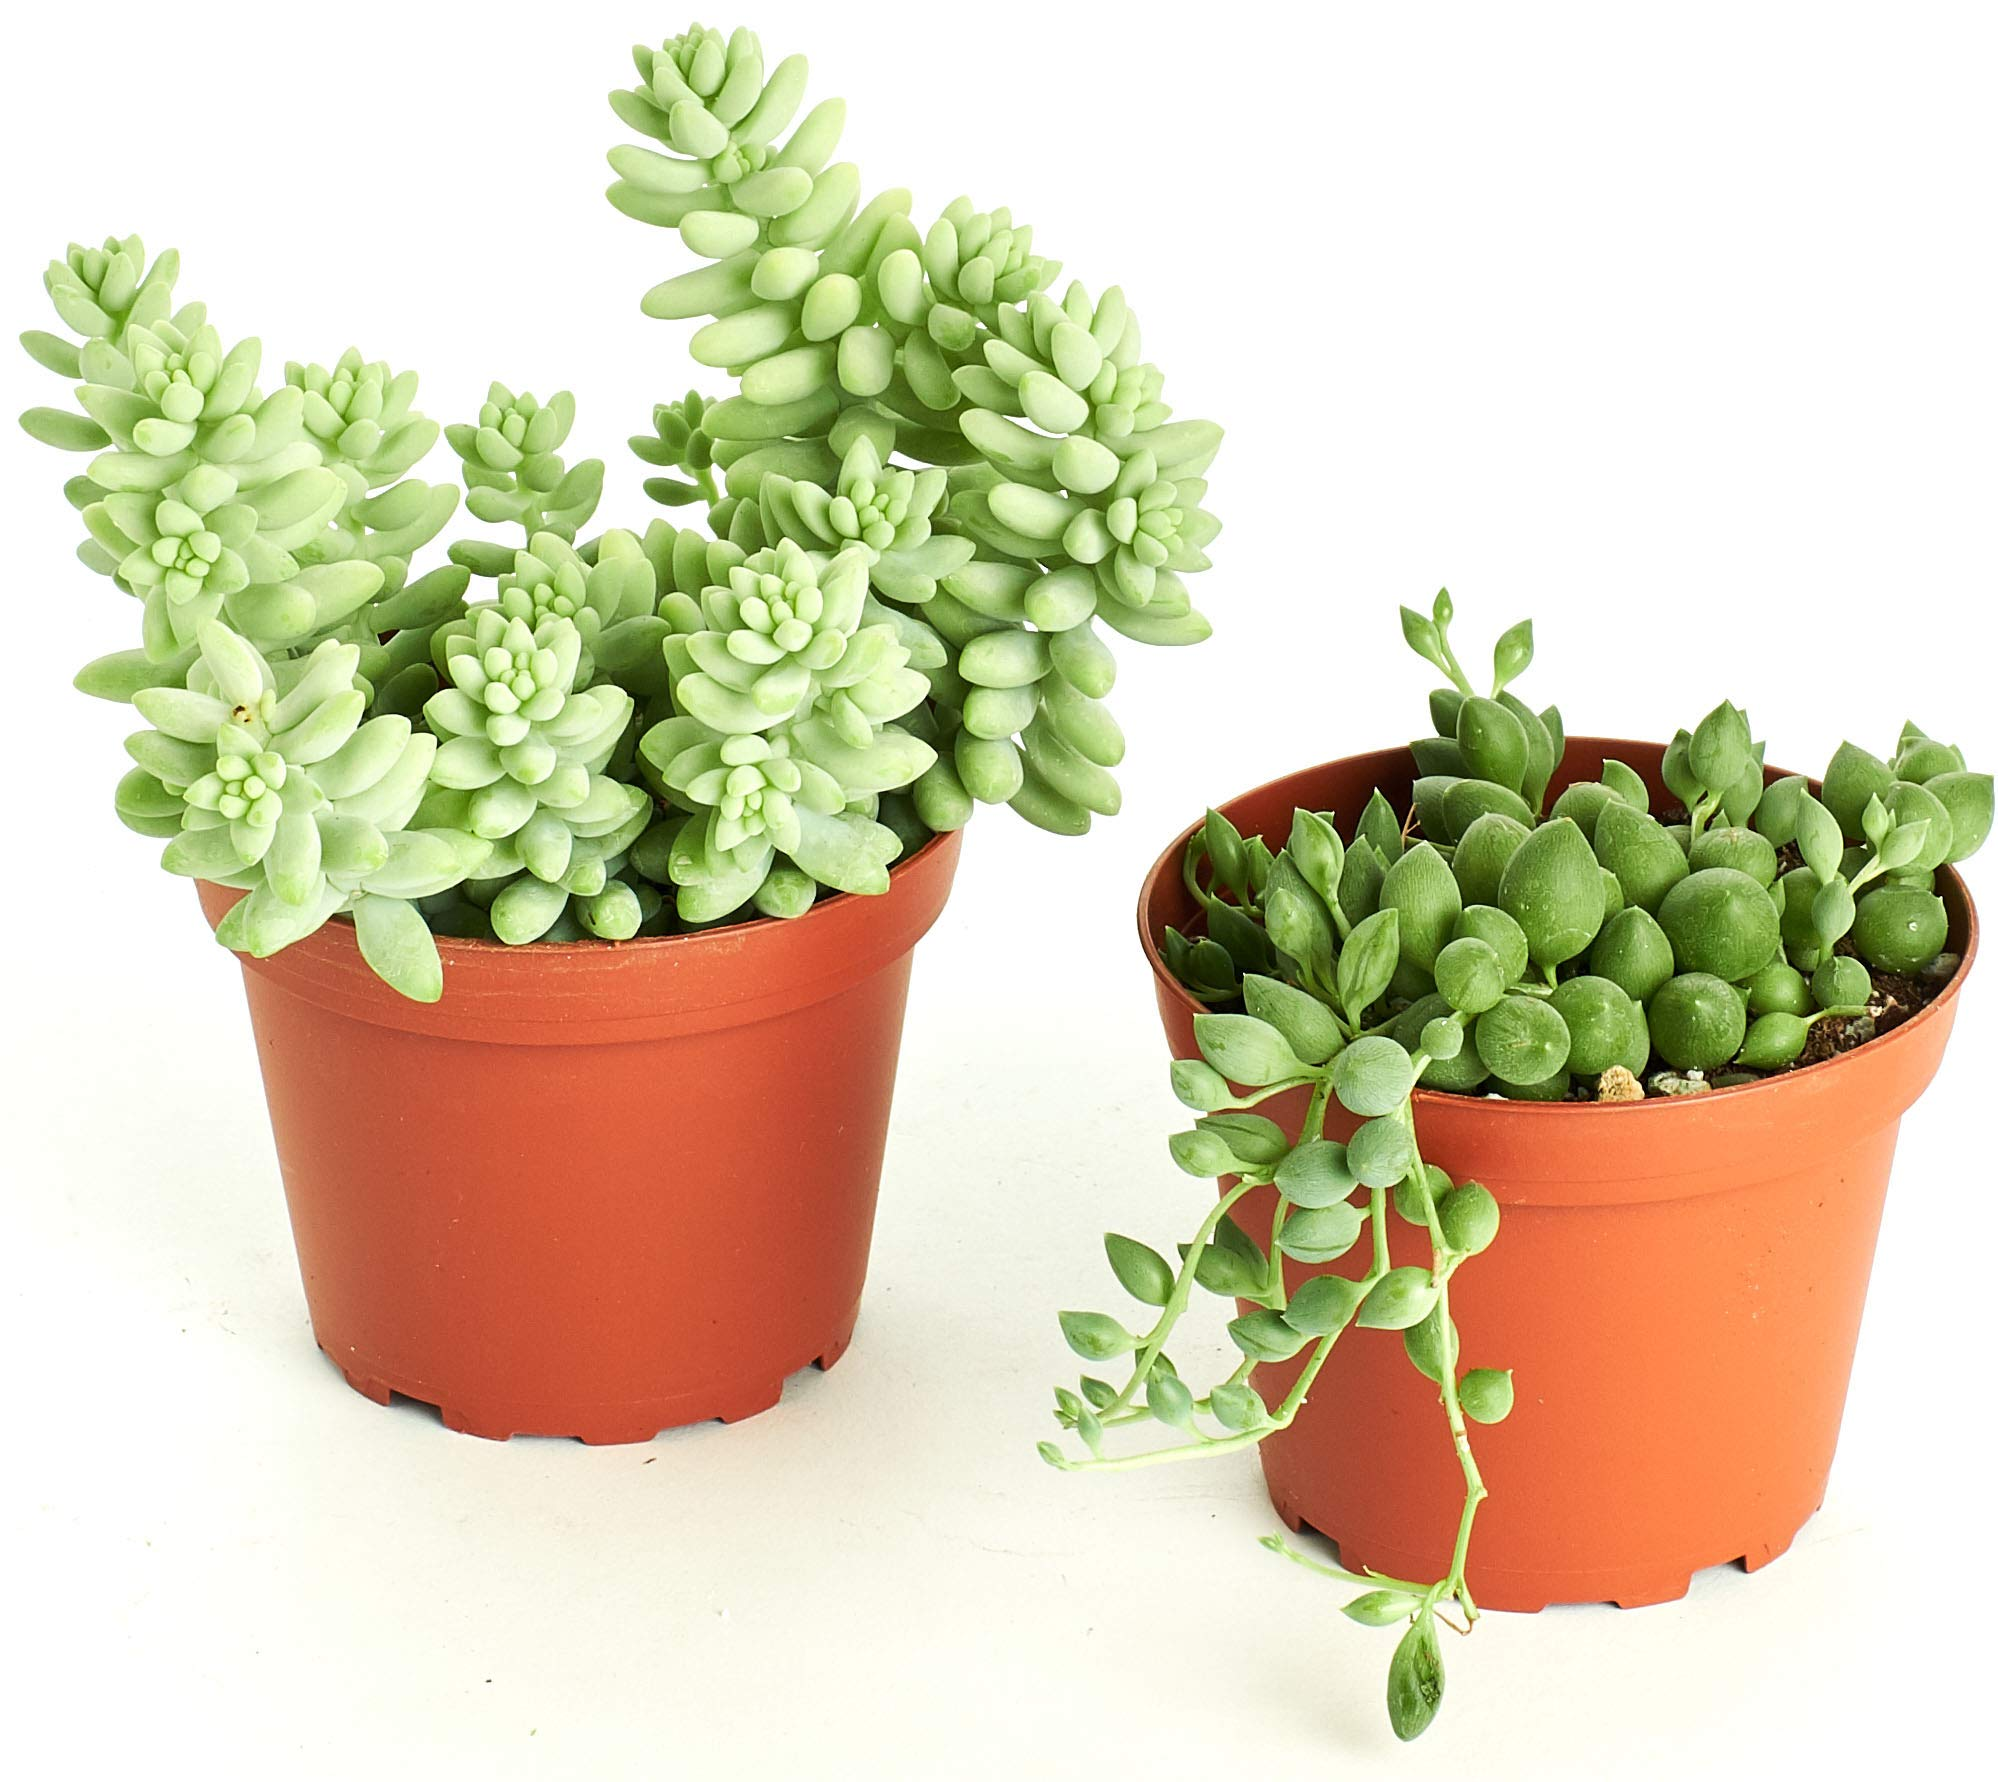 Shop Succulents| Hanging Collection of Live Succulent Plants, Hand Selected String of Pearls & Burrito Sedum Variety | Collection of 2 in 4'' pots